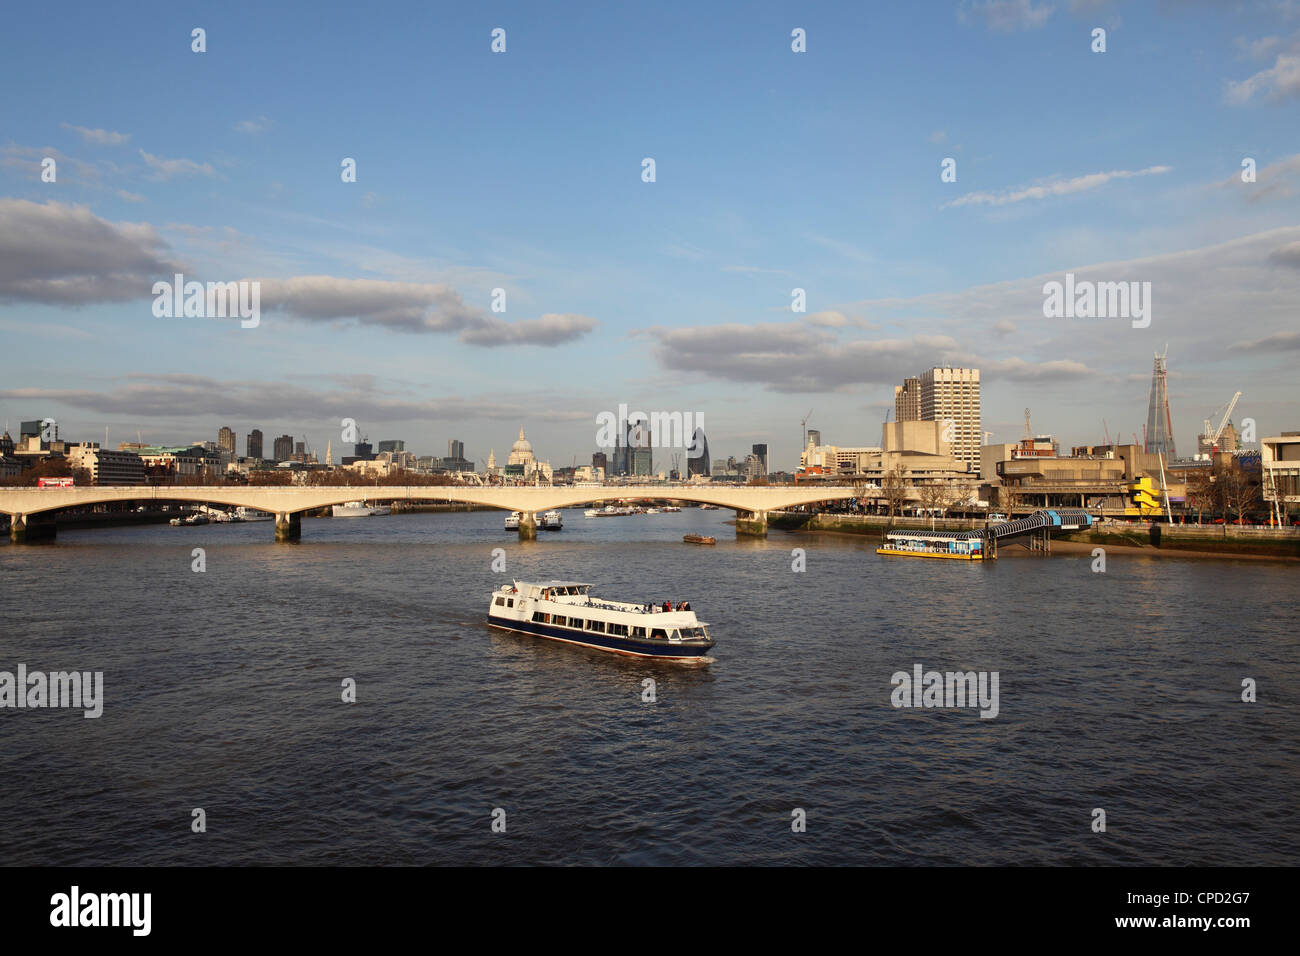 A cruise boat on River Thames, ahead of Waterloo Bridge and the skyline of the City, from Westminster, London, England, Stock Photo